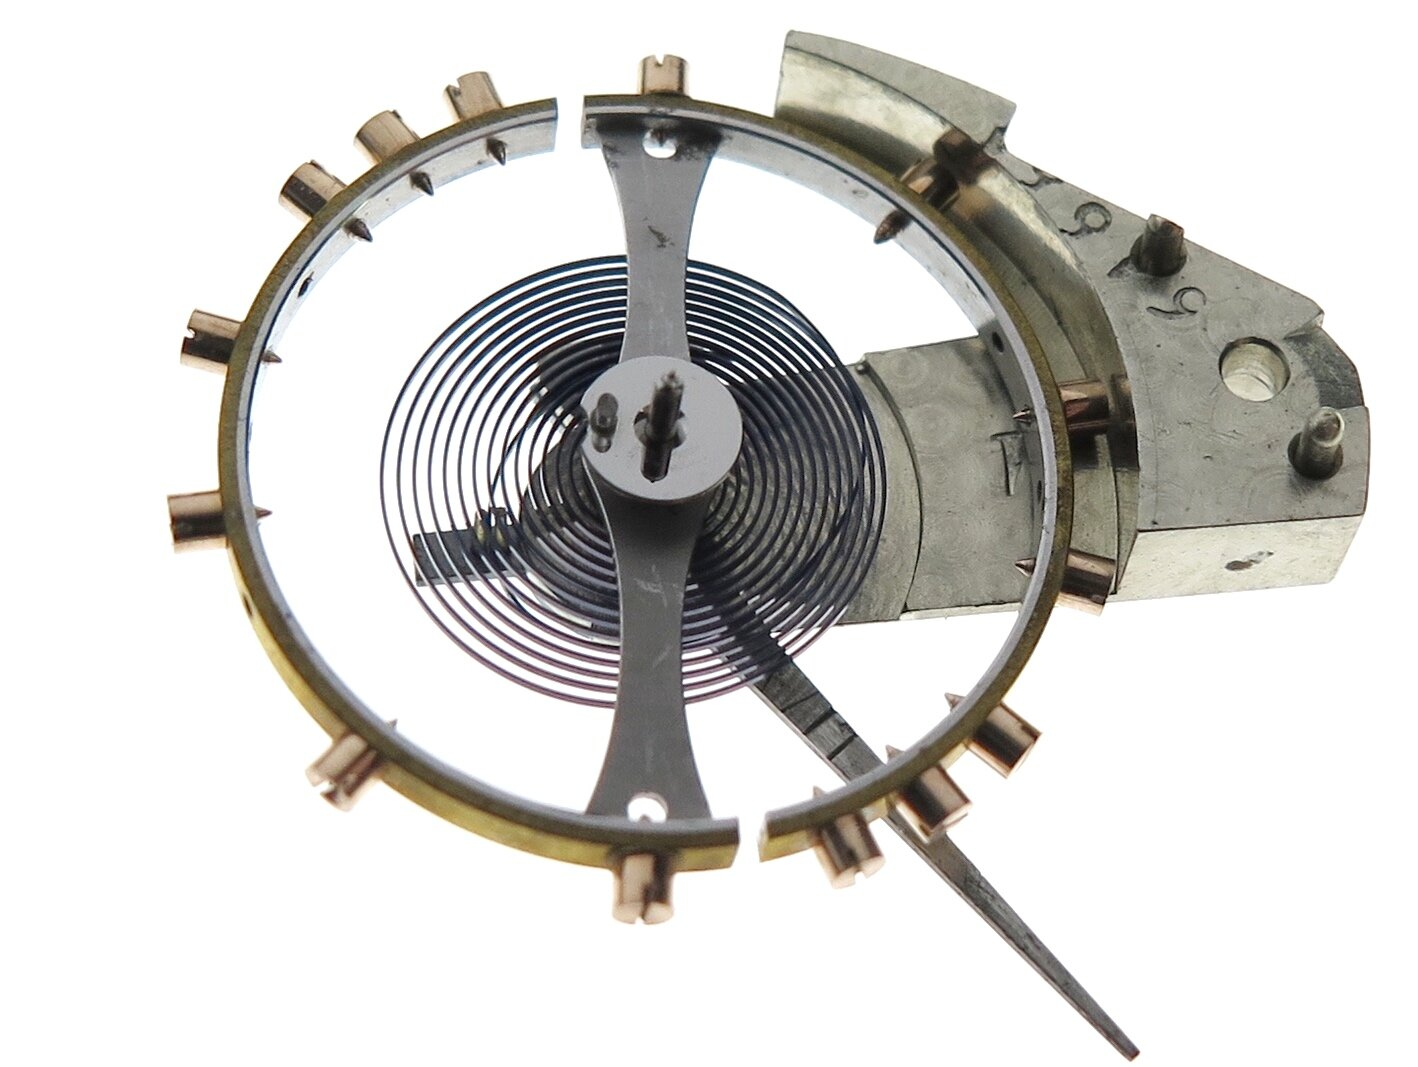 The small elliptical jewel in the centre of the image fixed to the polished steel circular plate is where the escapement lever (anchor) impulses the balance for it to oscillate.